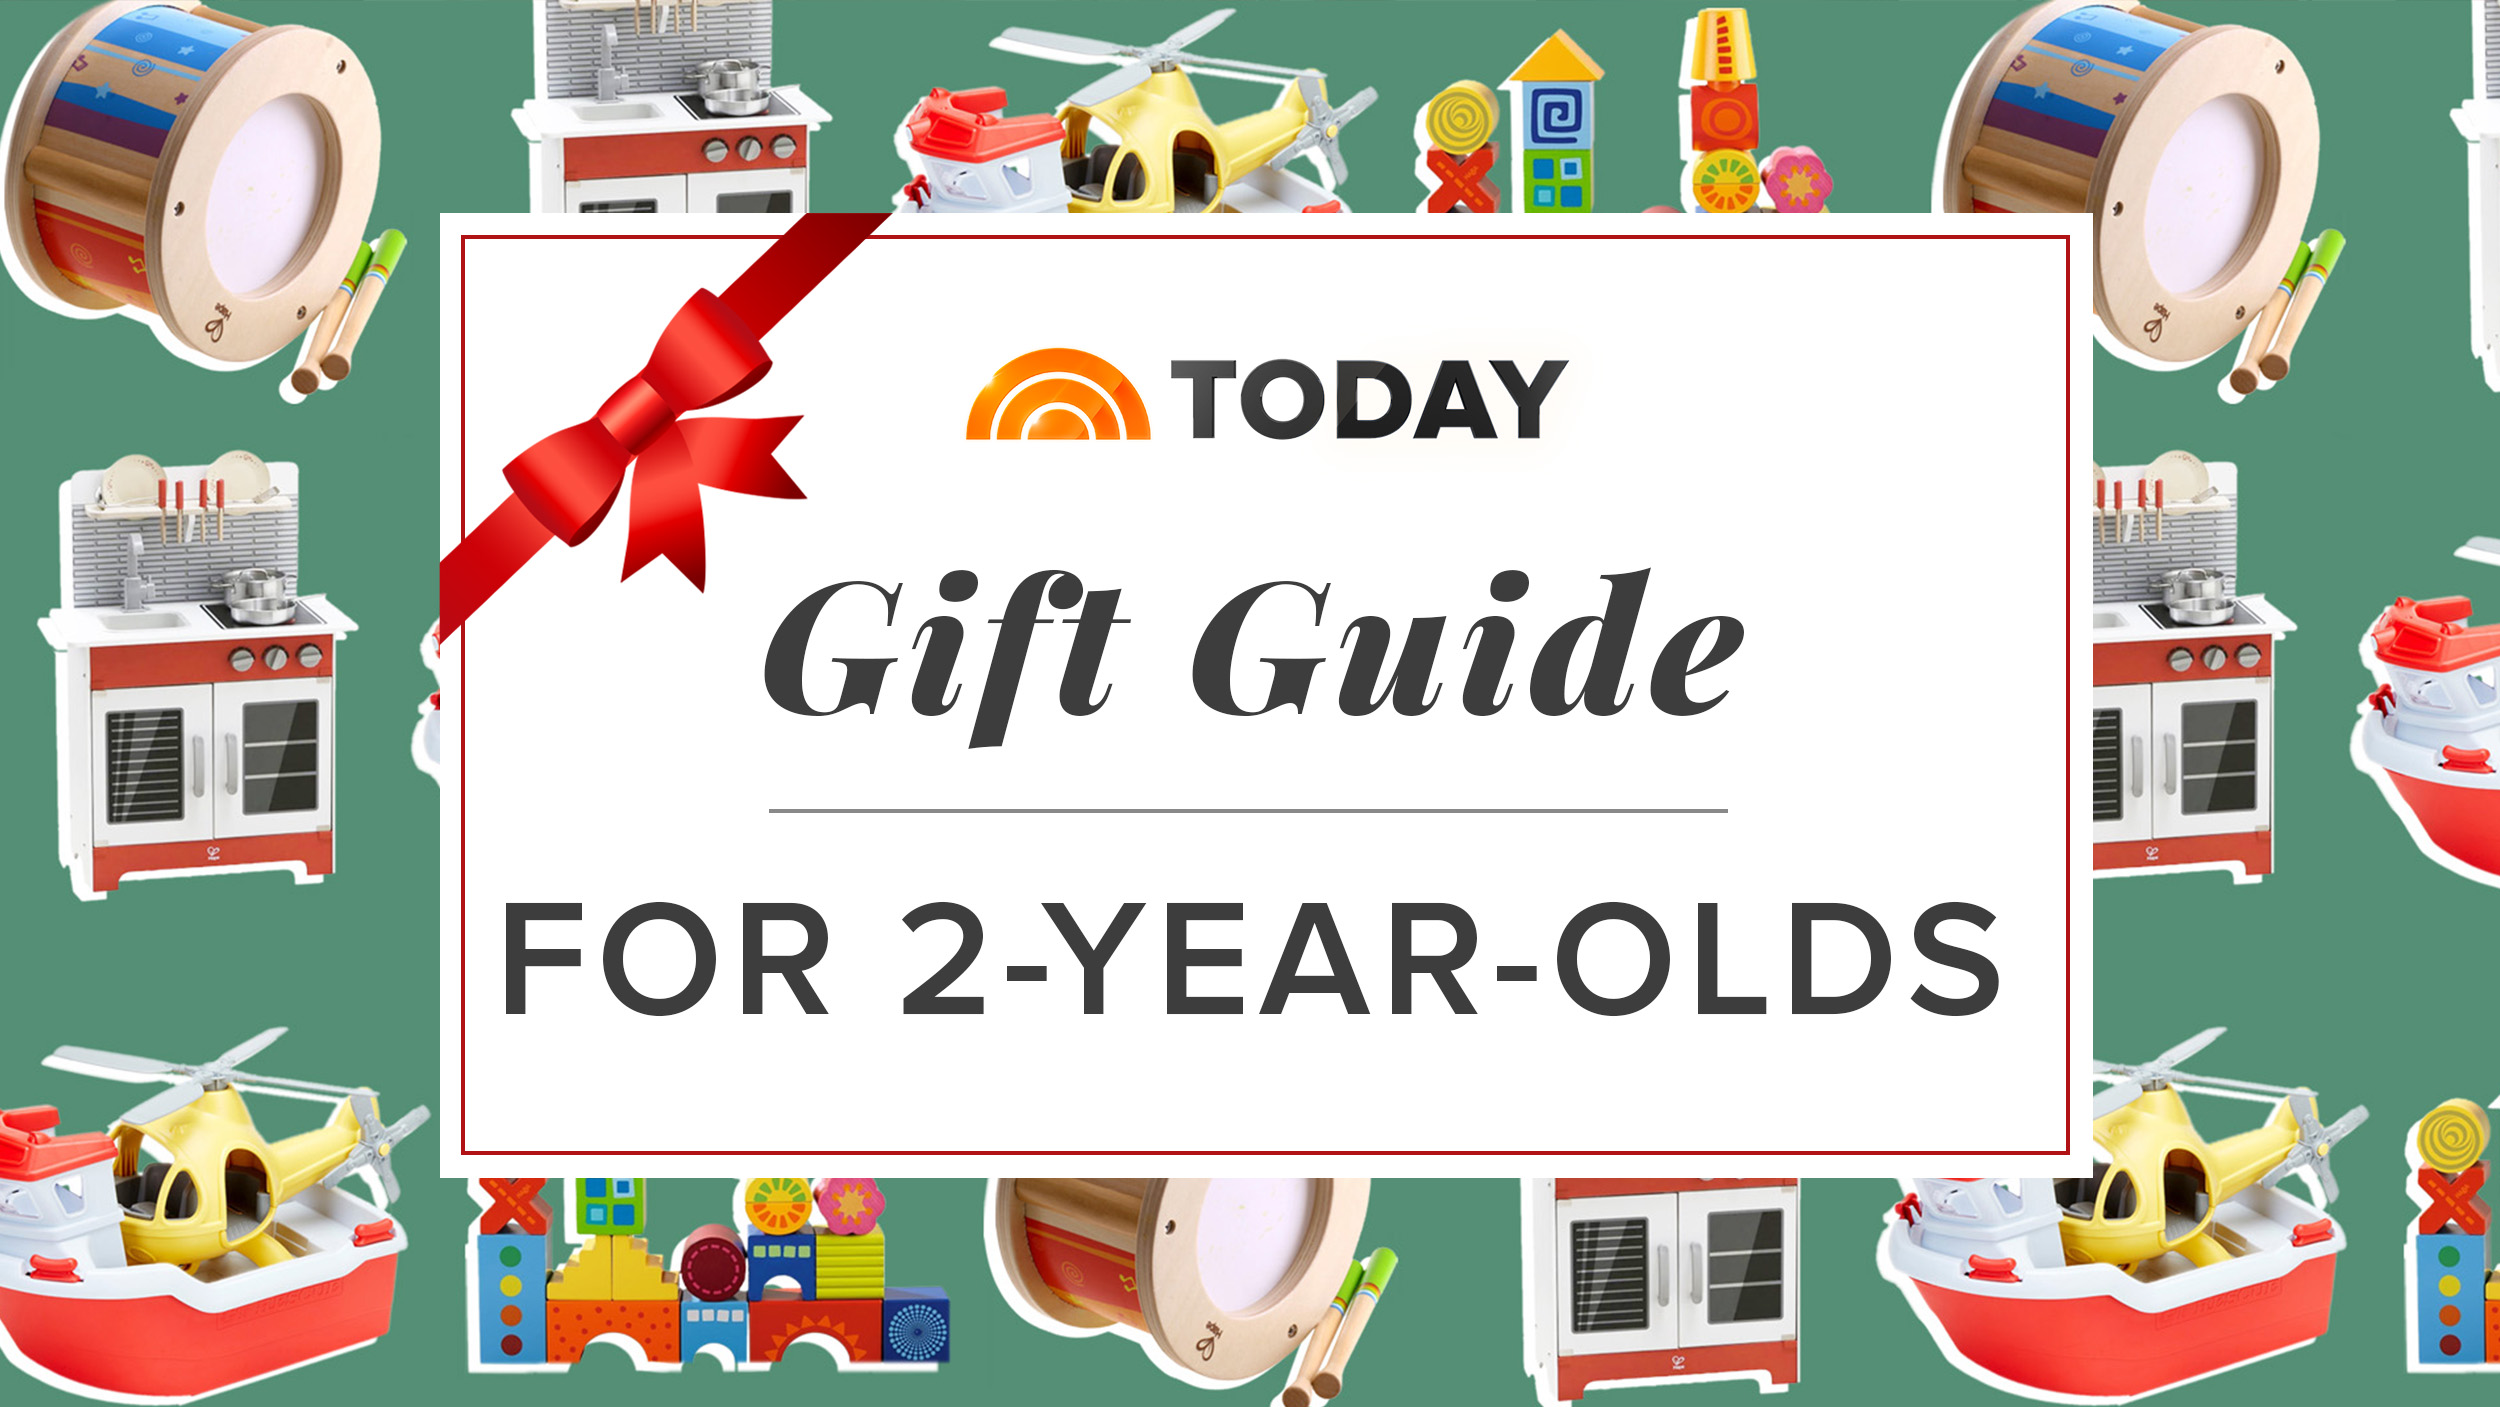 The Best Gifts For 2-year-olds From Our 2017 Holiday Guide